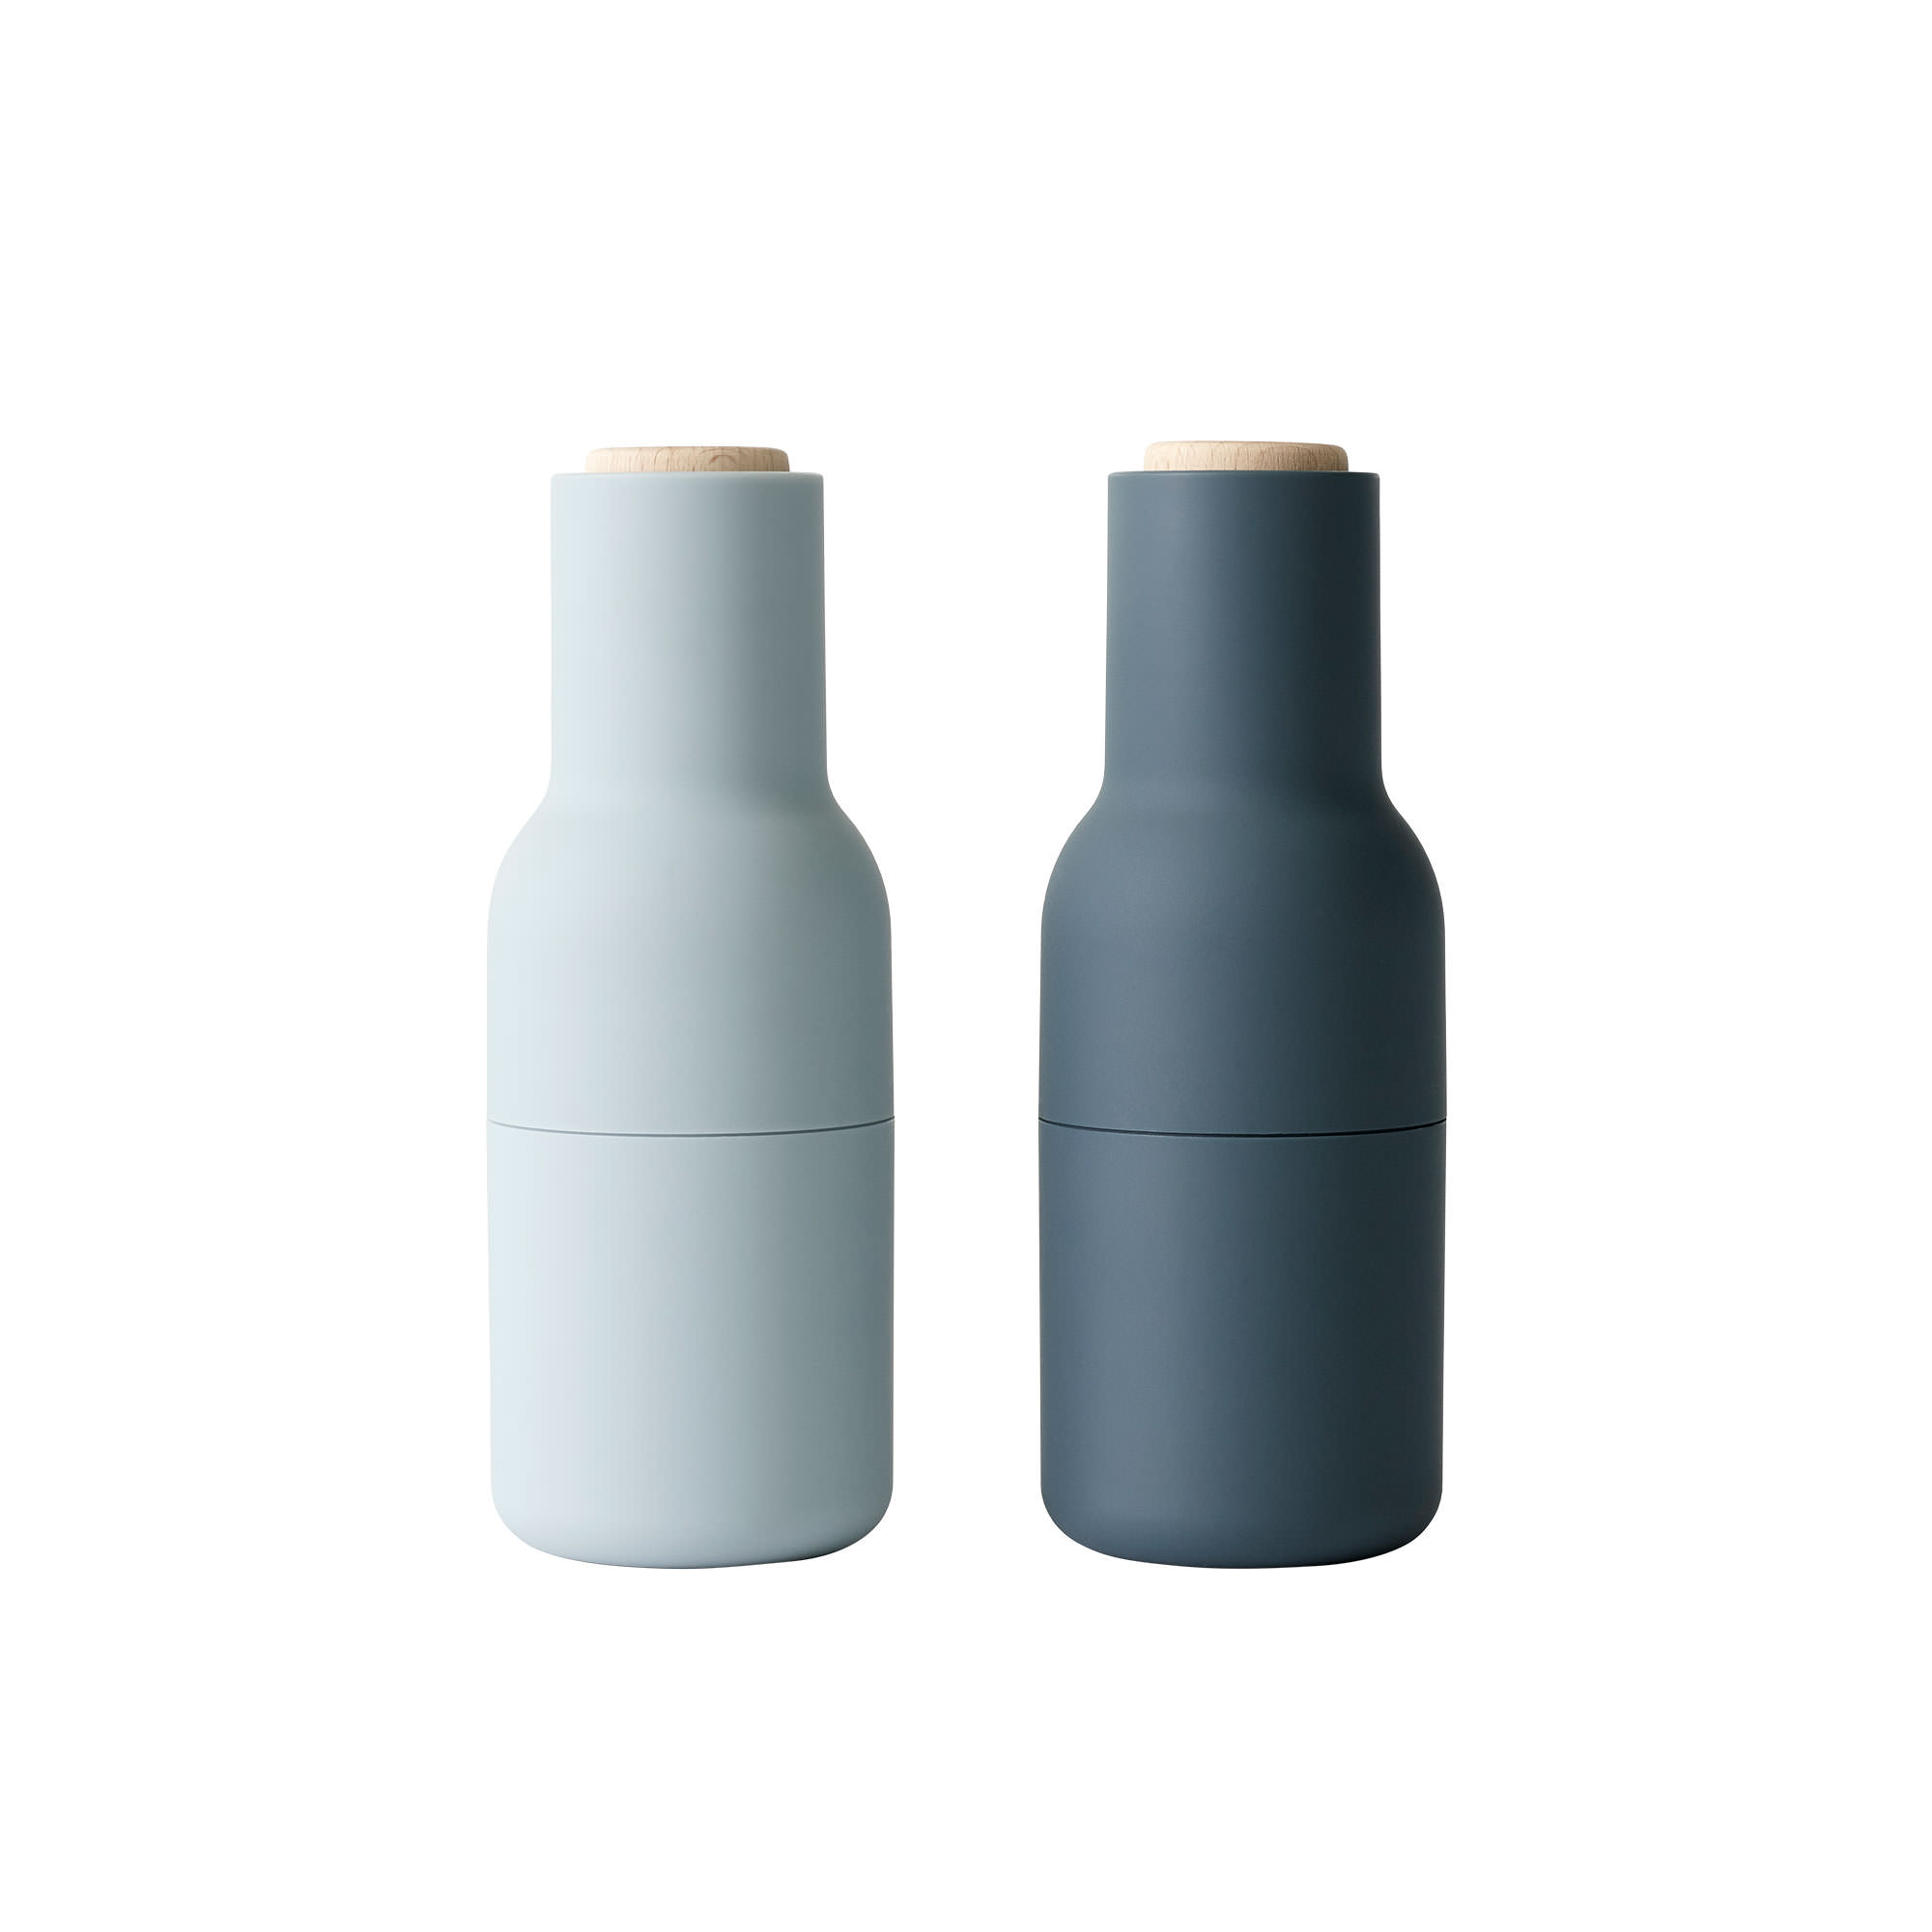 Menu Salt & Pepper Bottle Grinder Set w/ Beech Lid Blues